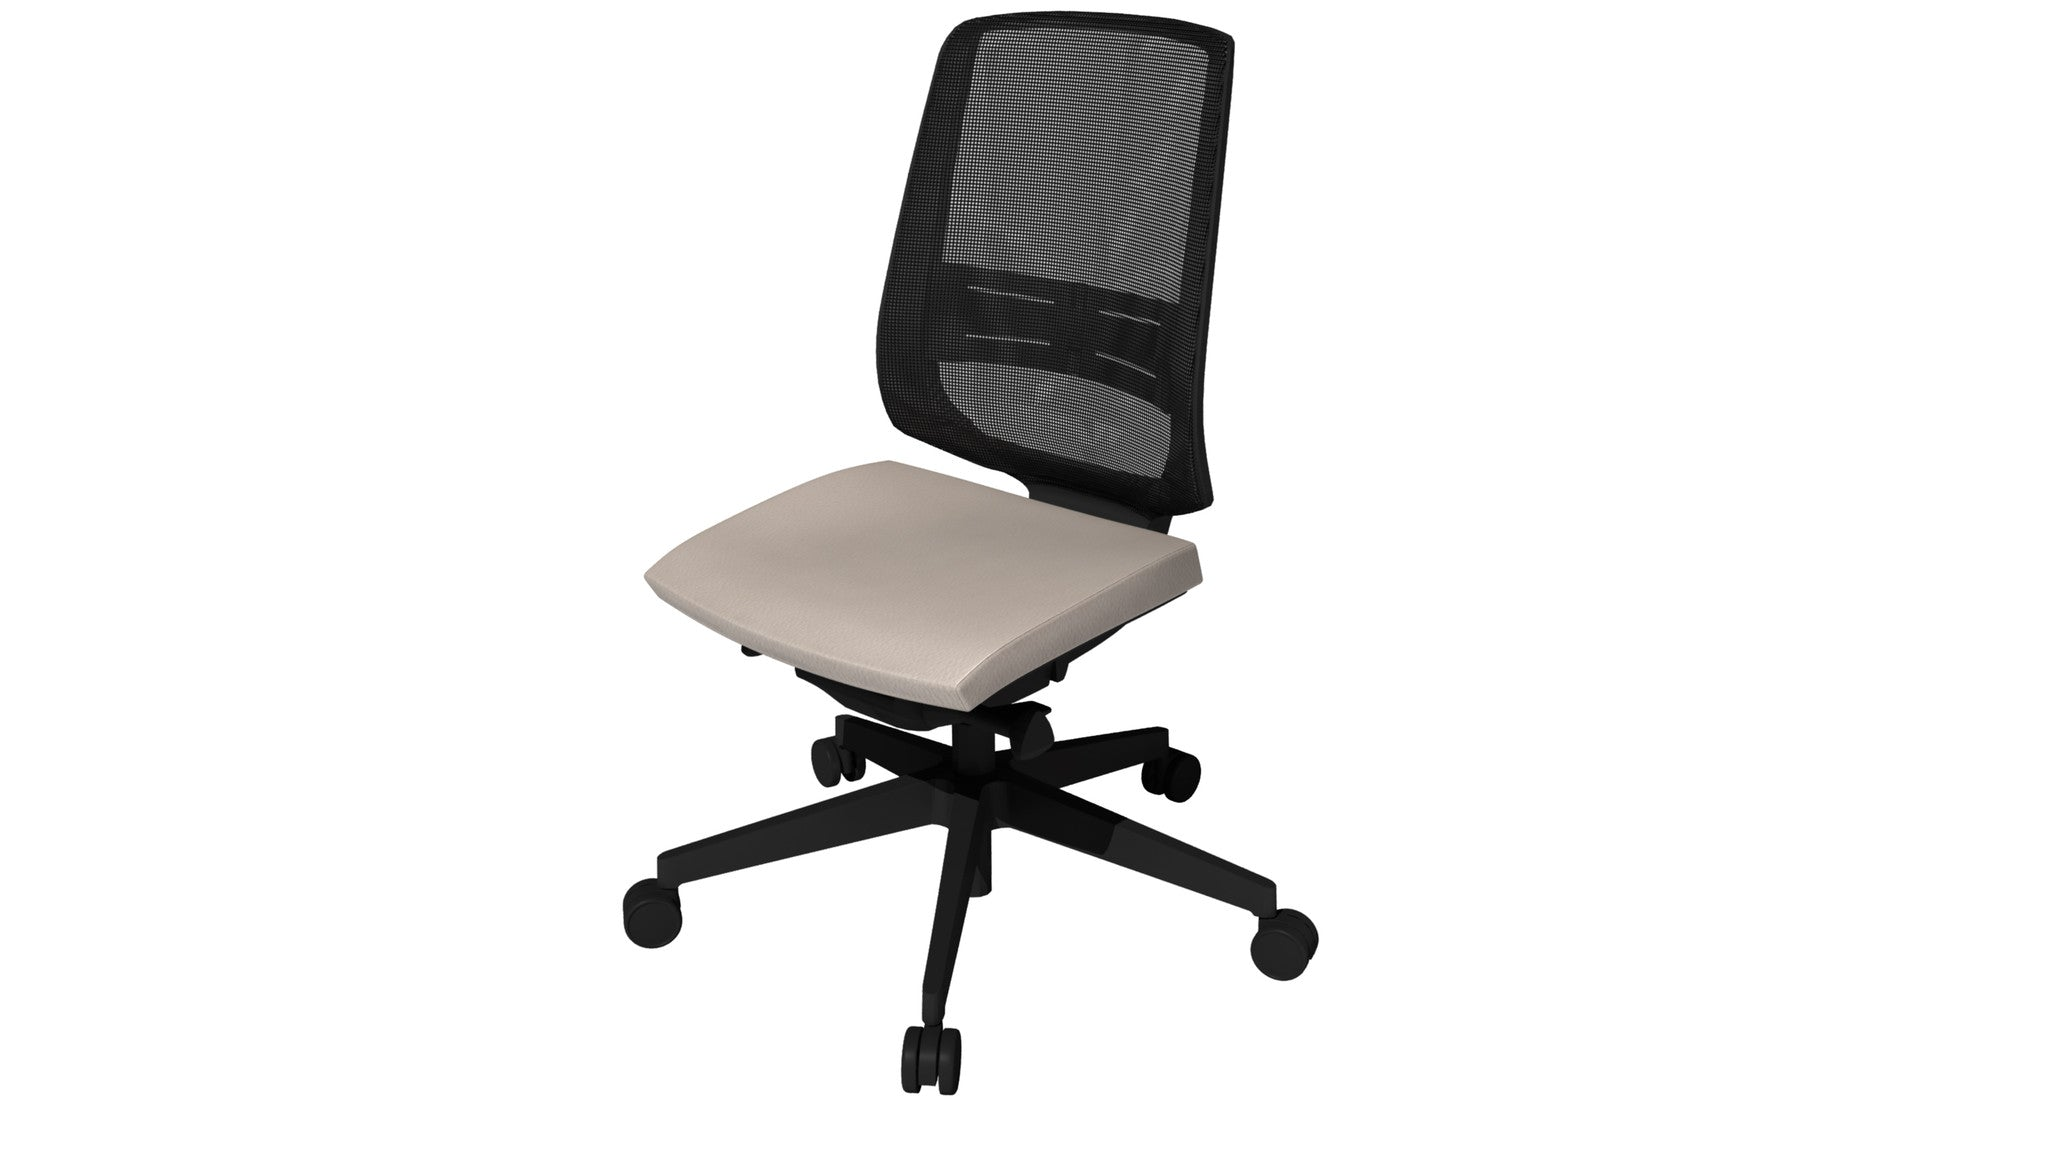 Rumas kontorstol office chair Fly pumpe - grey leather (sl-21)